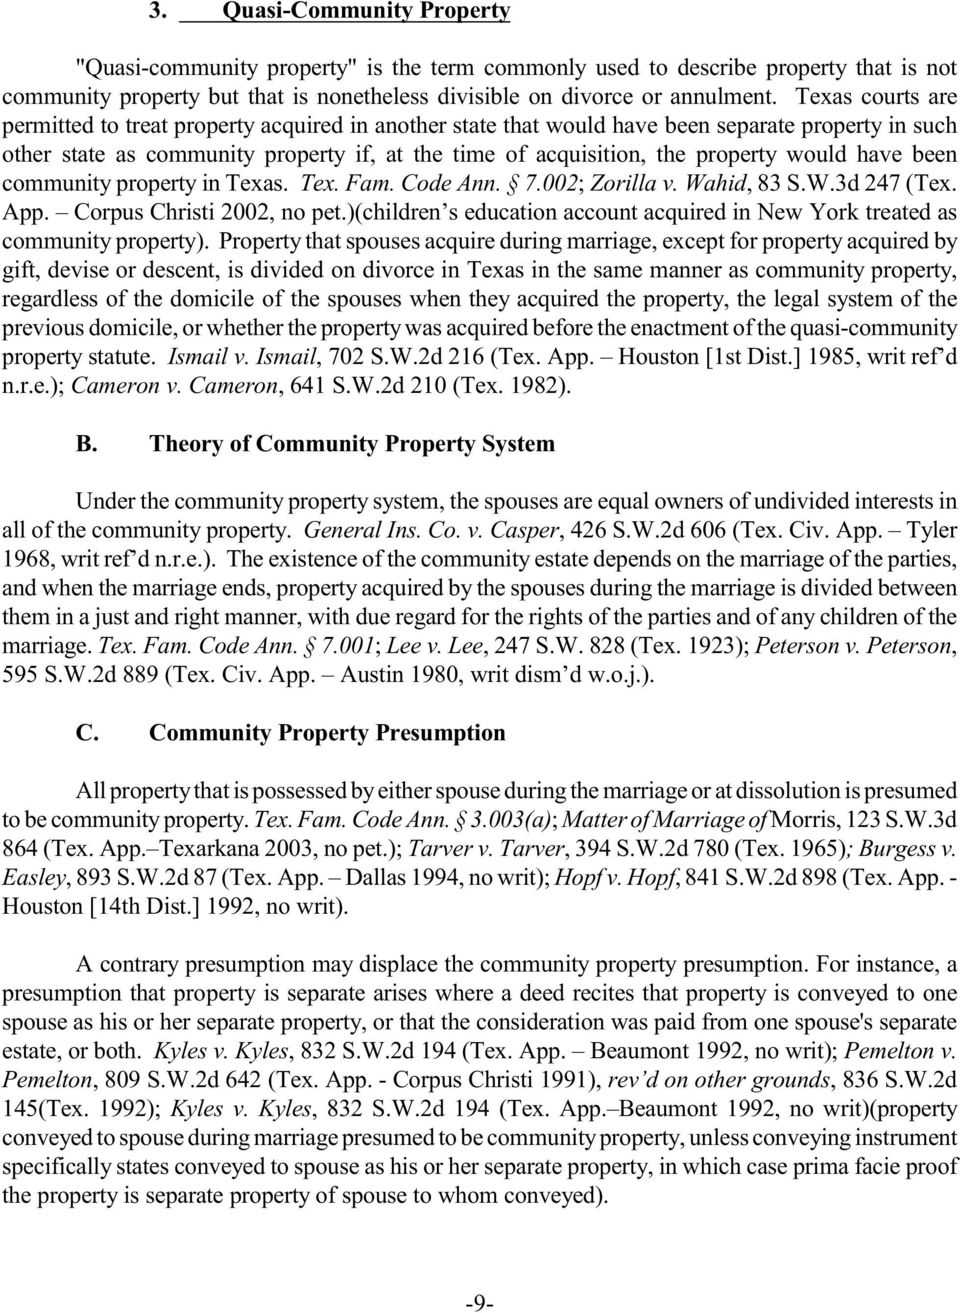 community property in Texas. Tex. Fam. Code Ann. 7.002; Zorilla v. Wahid, 83 S.W.3d 247 (Tex. App. Corpus Chrii 2002, no pet.